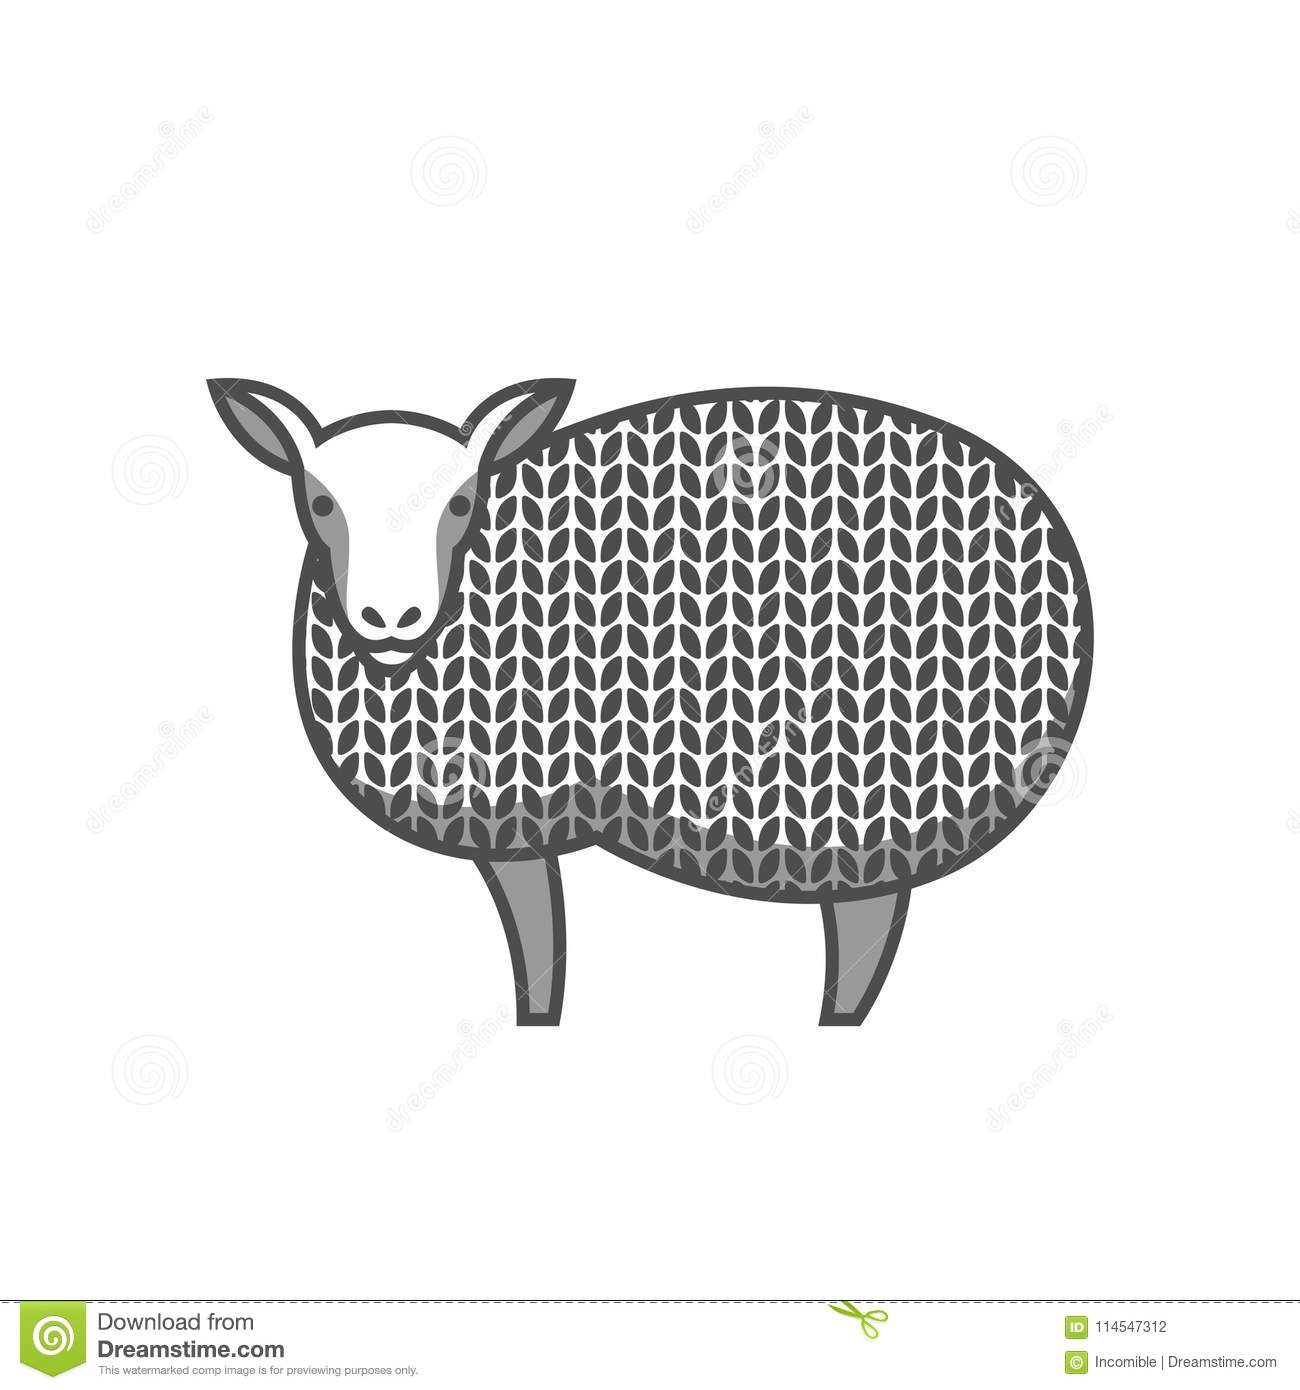 Sheep Craft Pattern | www.topsimages.com